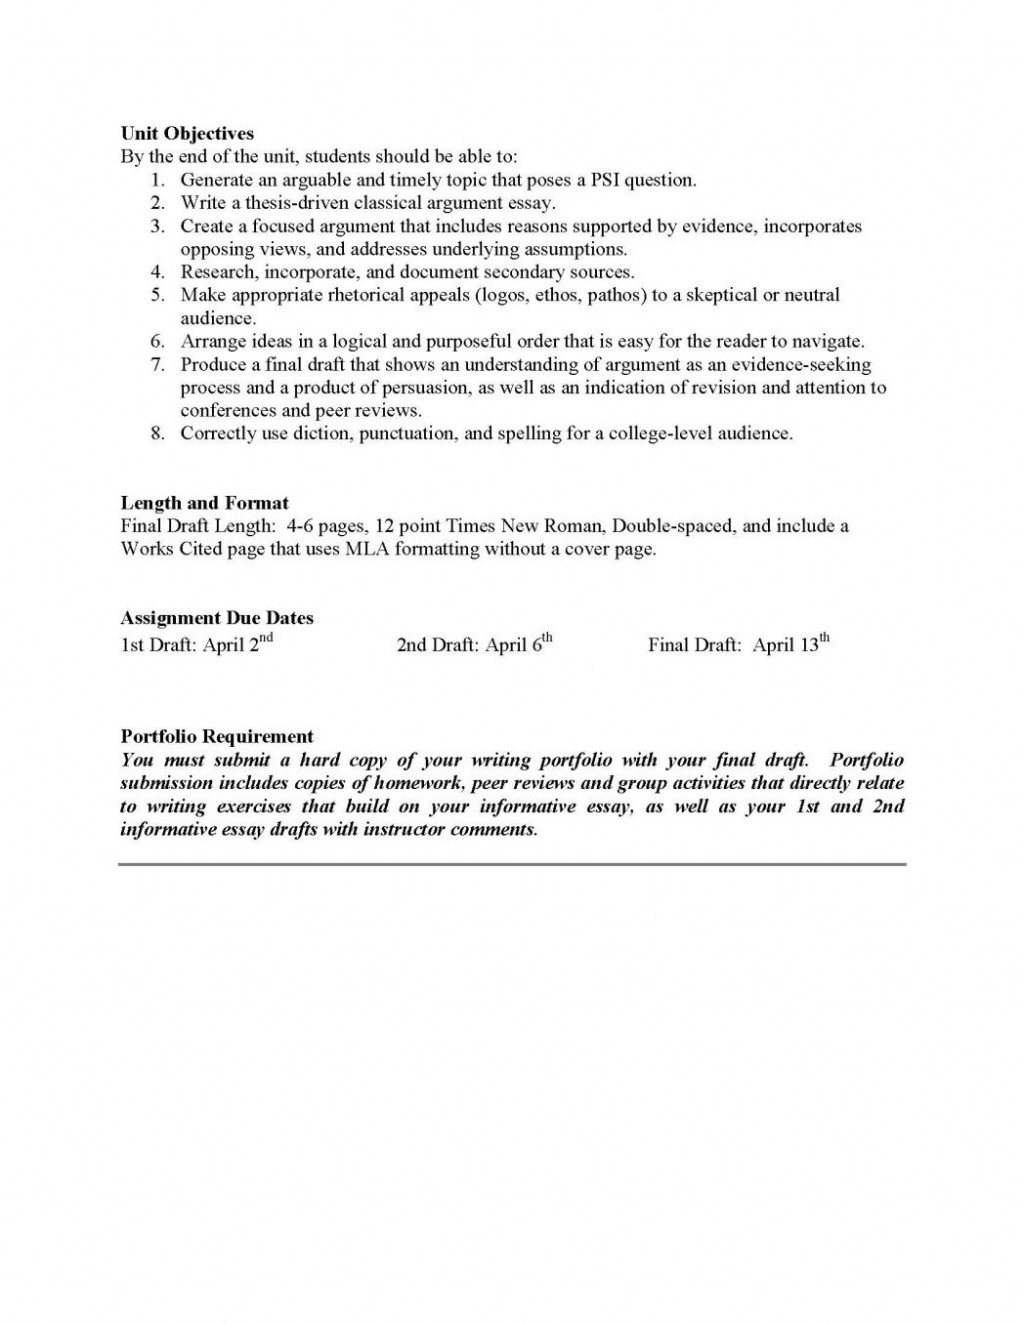 001 Homework Essay No Persuasive On Stem Cell Research Weekends Classical Argument Unit Assignment P Policy 1048x1356 Unusual Conclusion Help Writing Writer Large